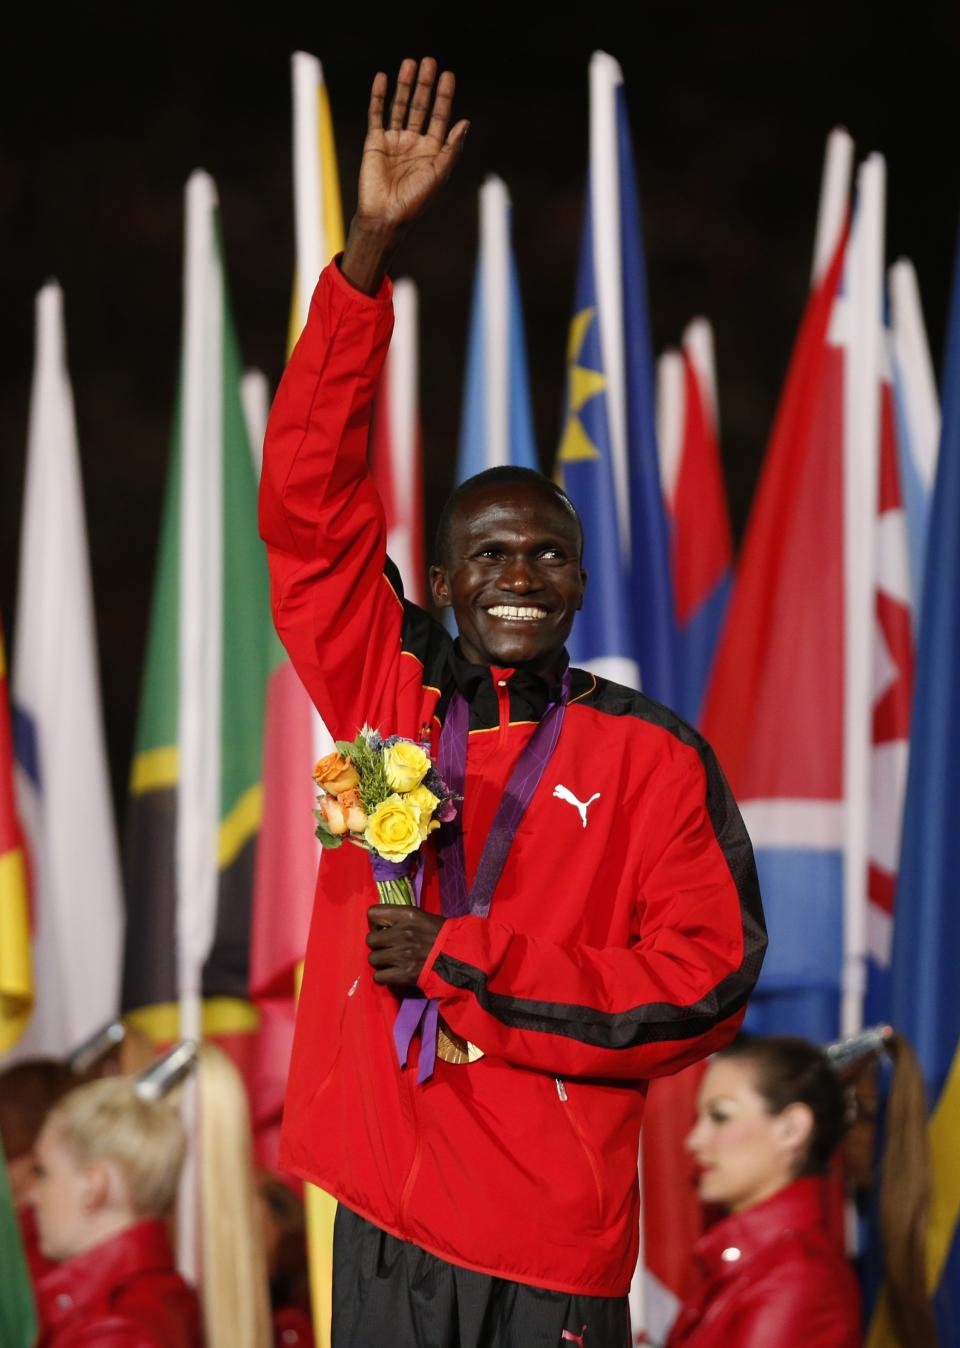 Uganda's Stephen Kiprotich poses with his gold medal for the men's marathon during the Closing Ceremony at the 2012 Summer Olympics, Sunday, Aug. 12, 2012, in London. (AP Photo/Matt Dunham)